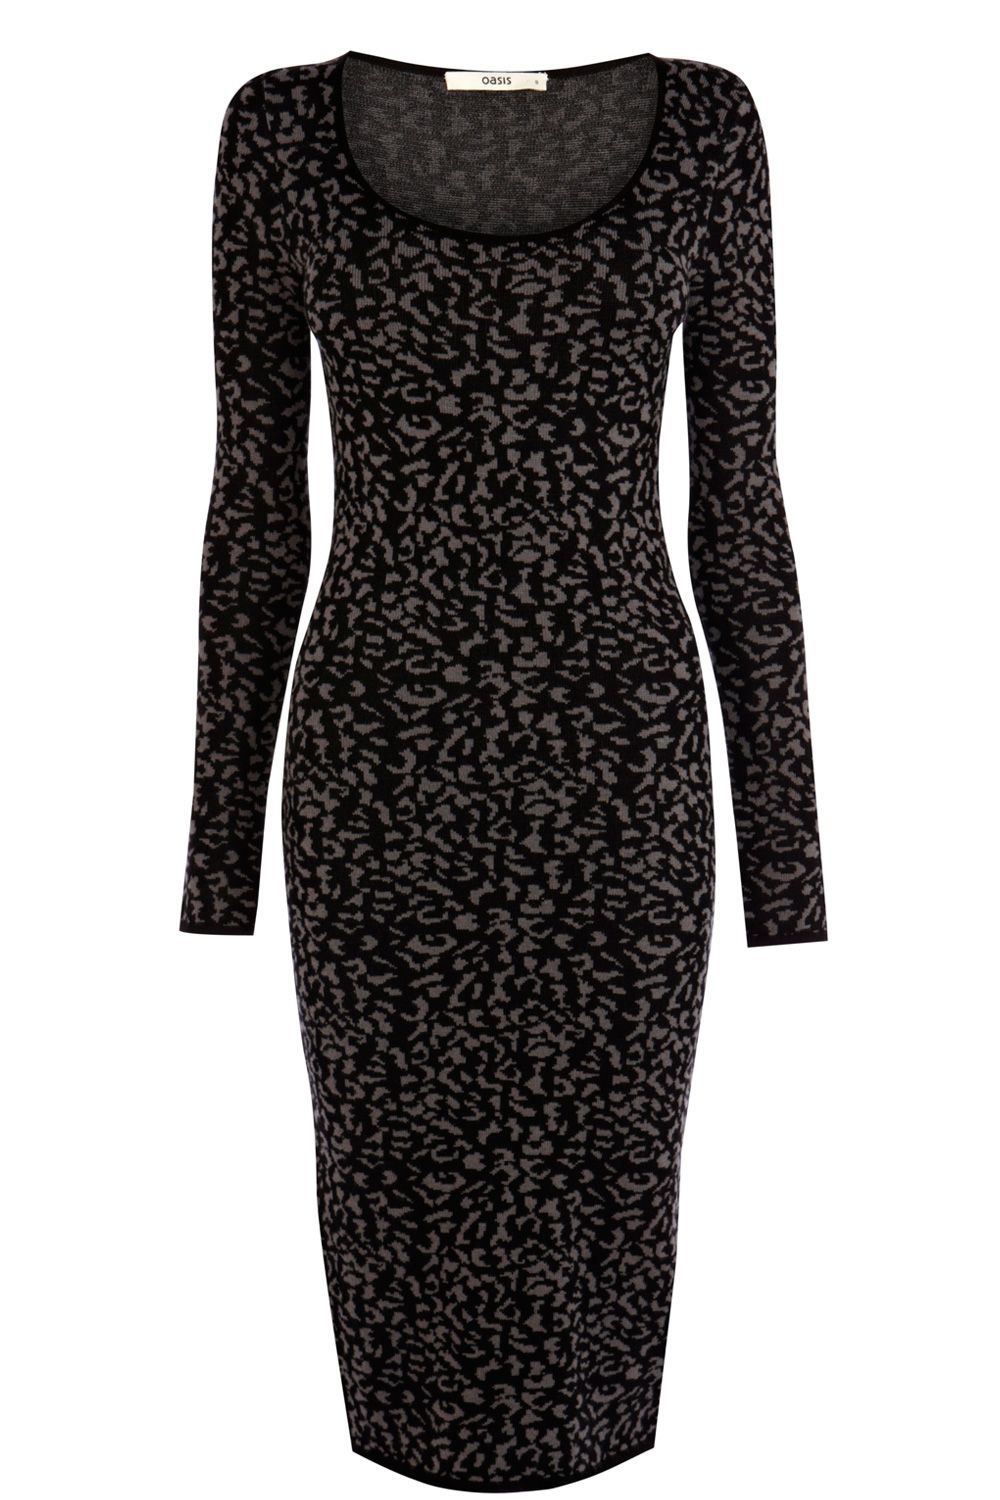 Animal jacquard bodycon dress